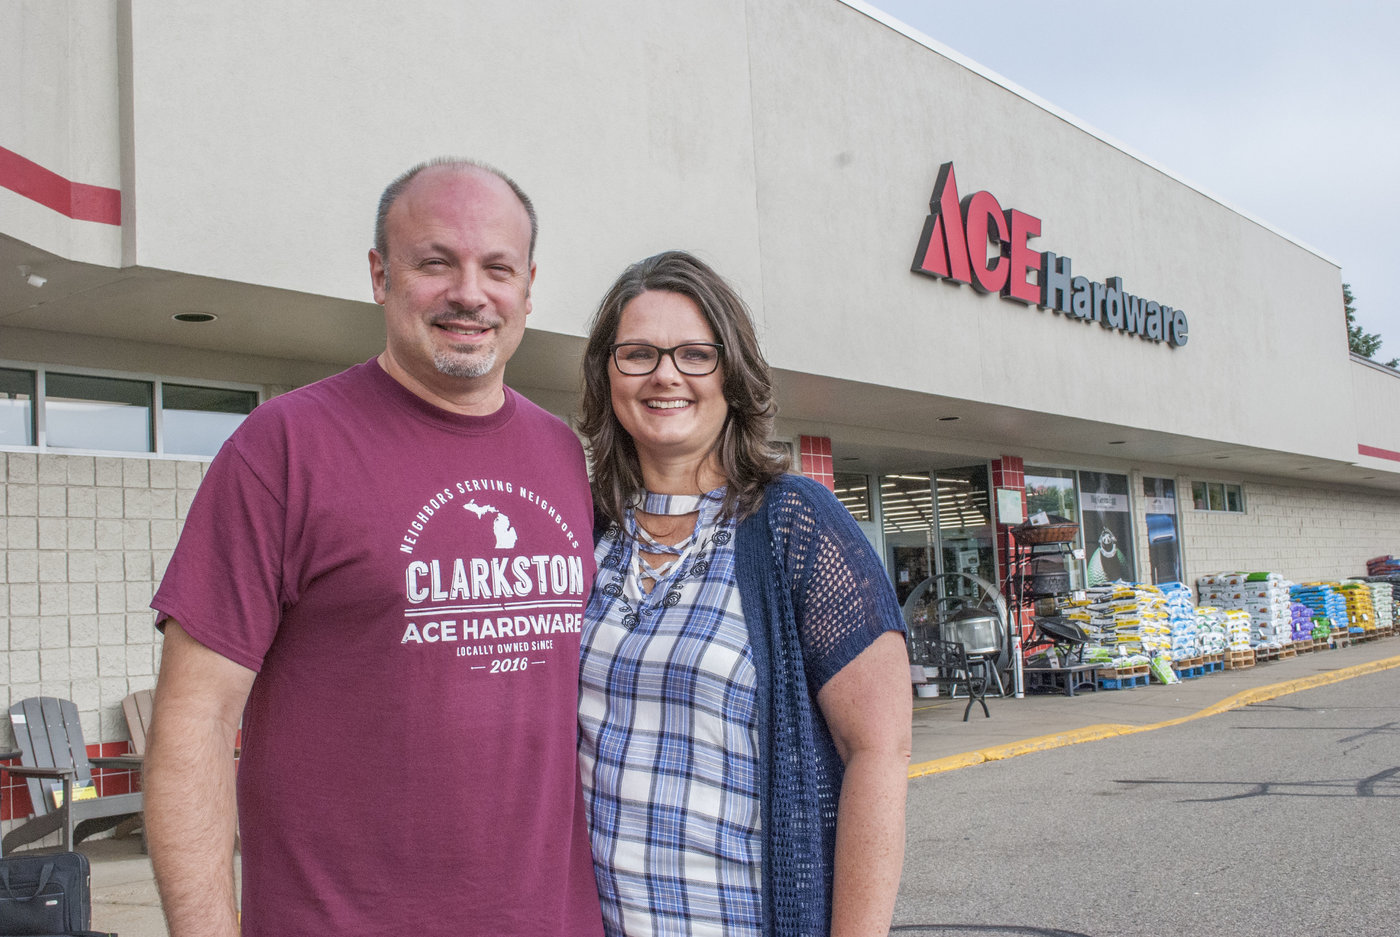 Jason and Melanie Haley have revitalized a former distressed hardware store in their hometown, completely revamping everything to develop Ace Hardware of Clarkston.